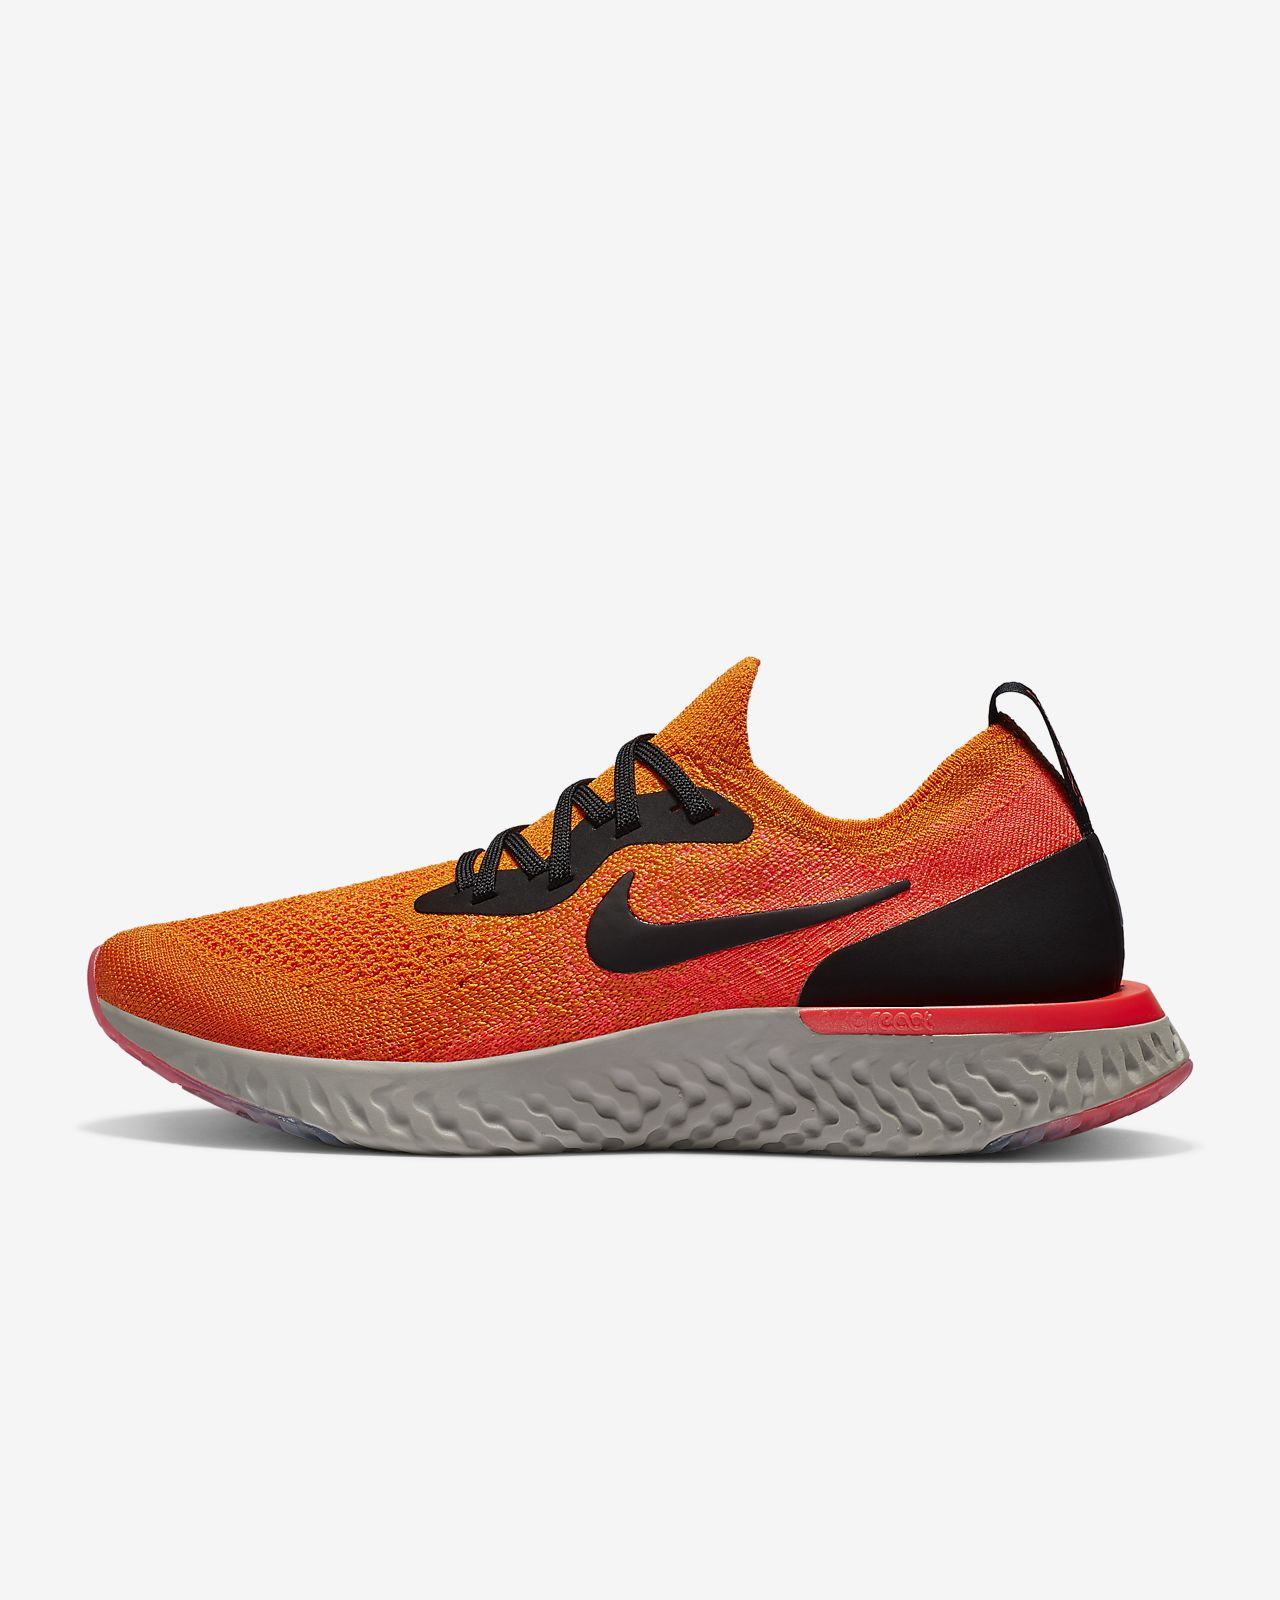 newest 04a5f 063e6 ... italy chaussure de running nike epic react flyknit pour femme 2ed61  1ead1 ...